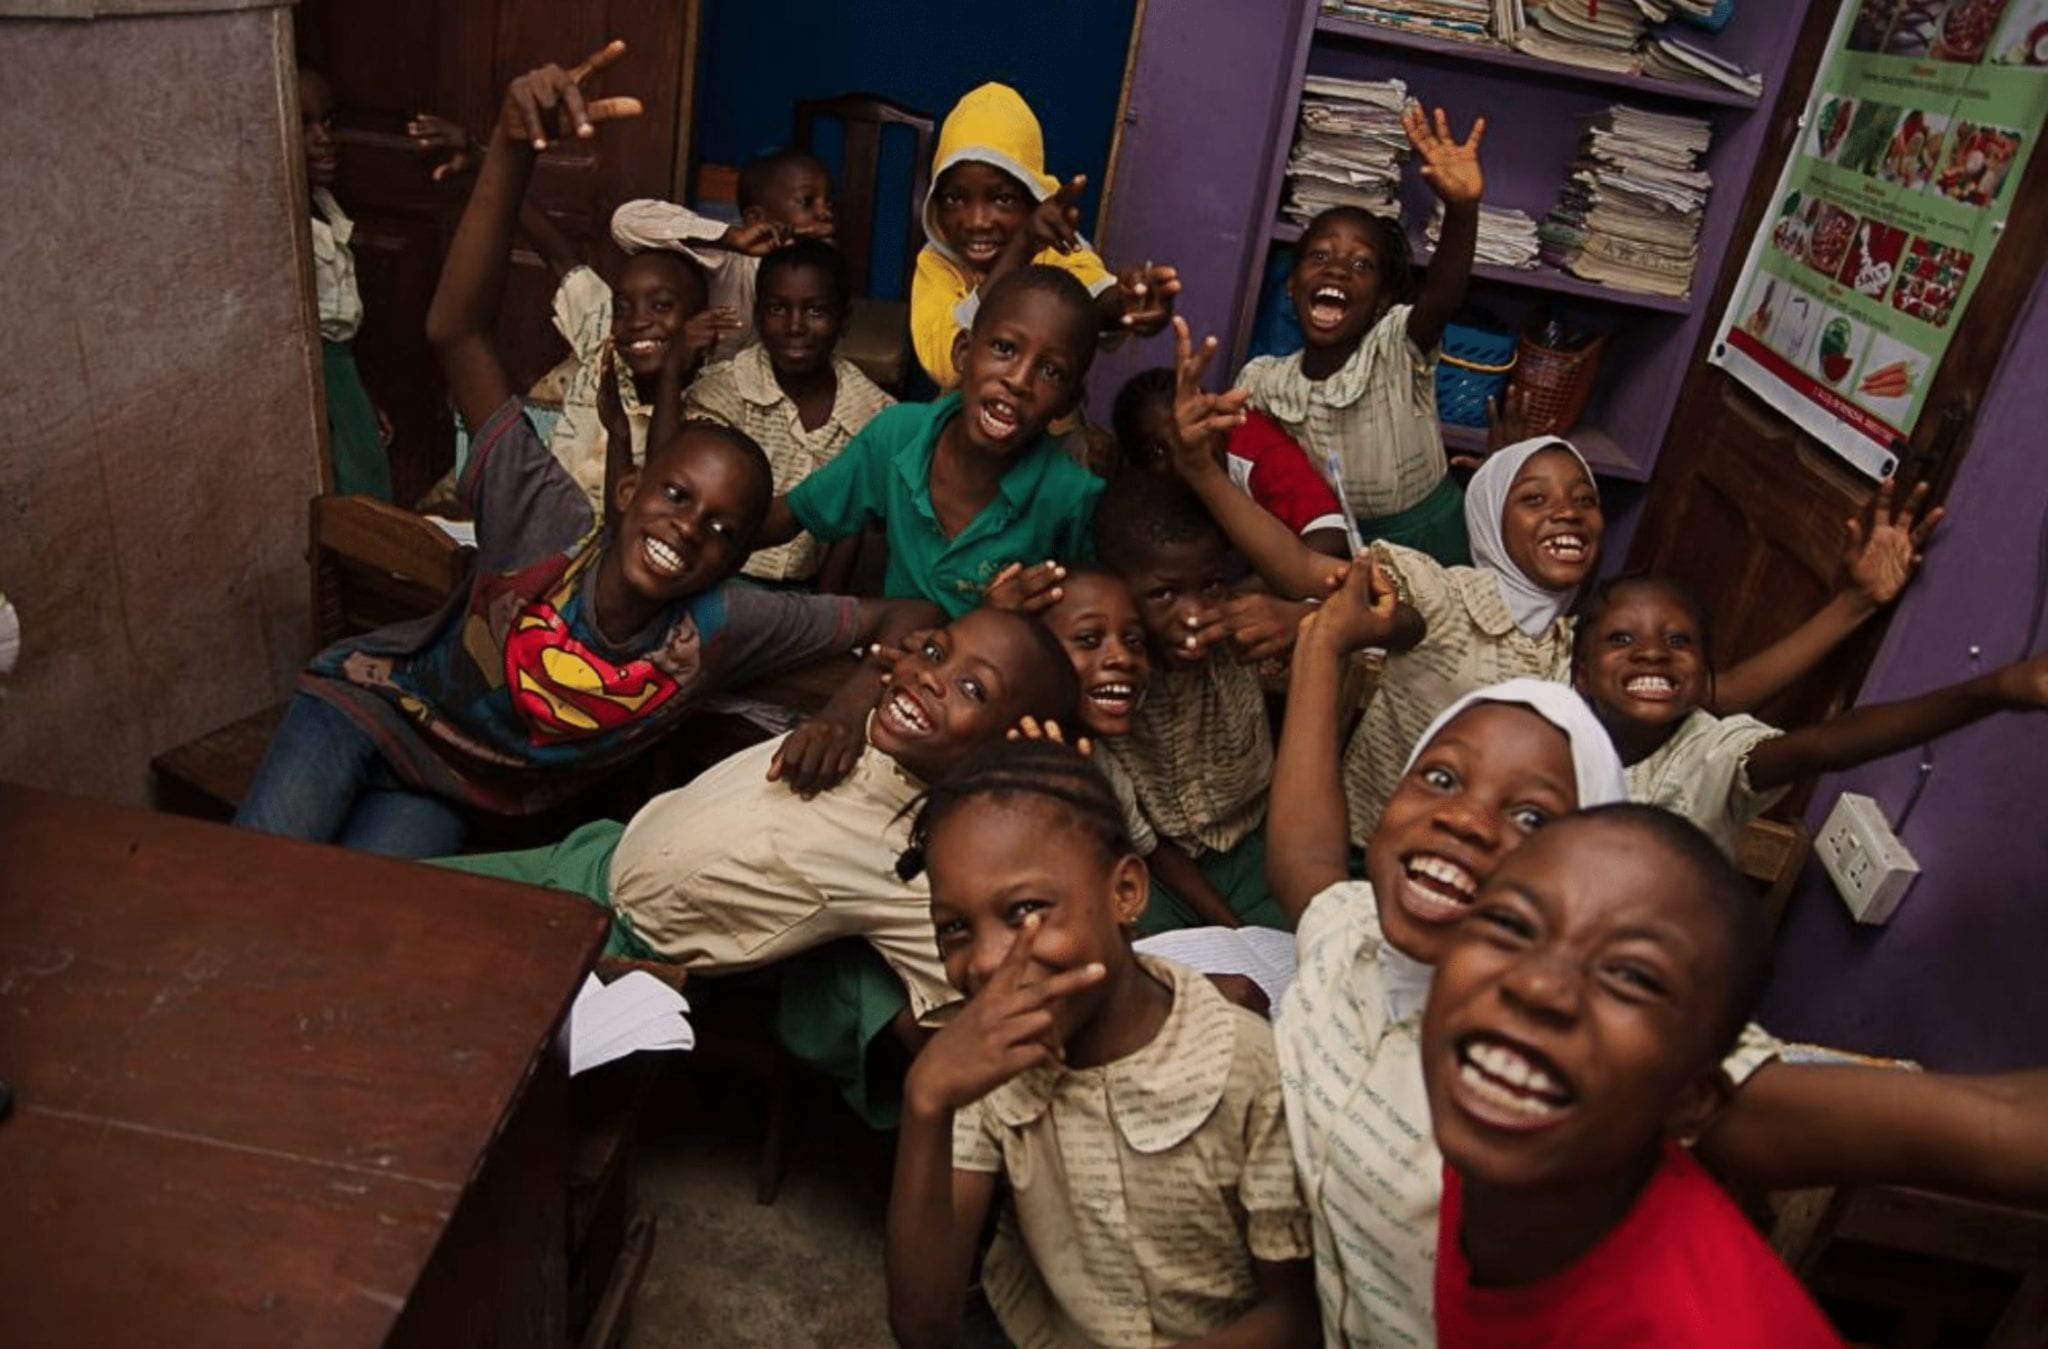 nigeria lagos technology computers programming coding children learning education technological literacy project developing country